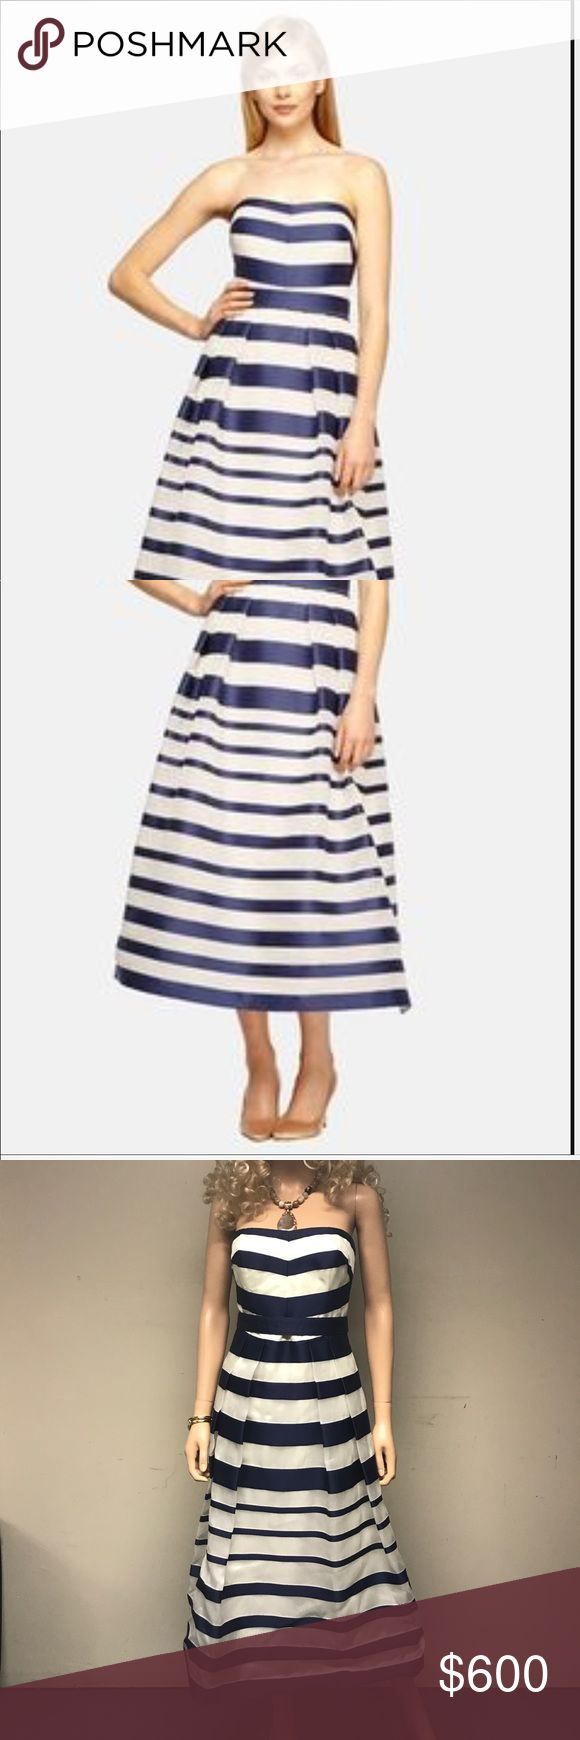 KAY UNGER STRIPE SILK ORGANZA STRAPLESS MIDI DRESS SOFT JERSEY/ASYMMETICAL STRAPLESS WORN ONCE IN ONE OF MY FRIENDS WEDDING BOUGHT IN NEW YORK FOR $800 STRIPE NAVY BLUE SIZE 8 Kay Unger Dresses Midi